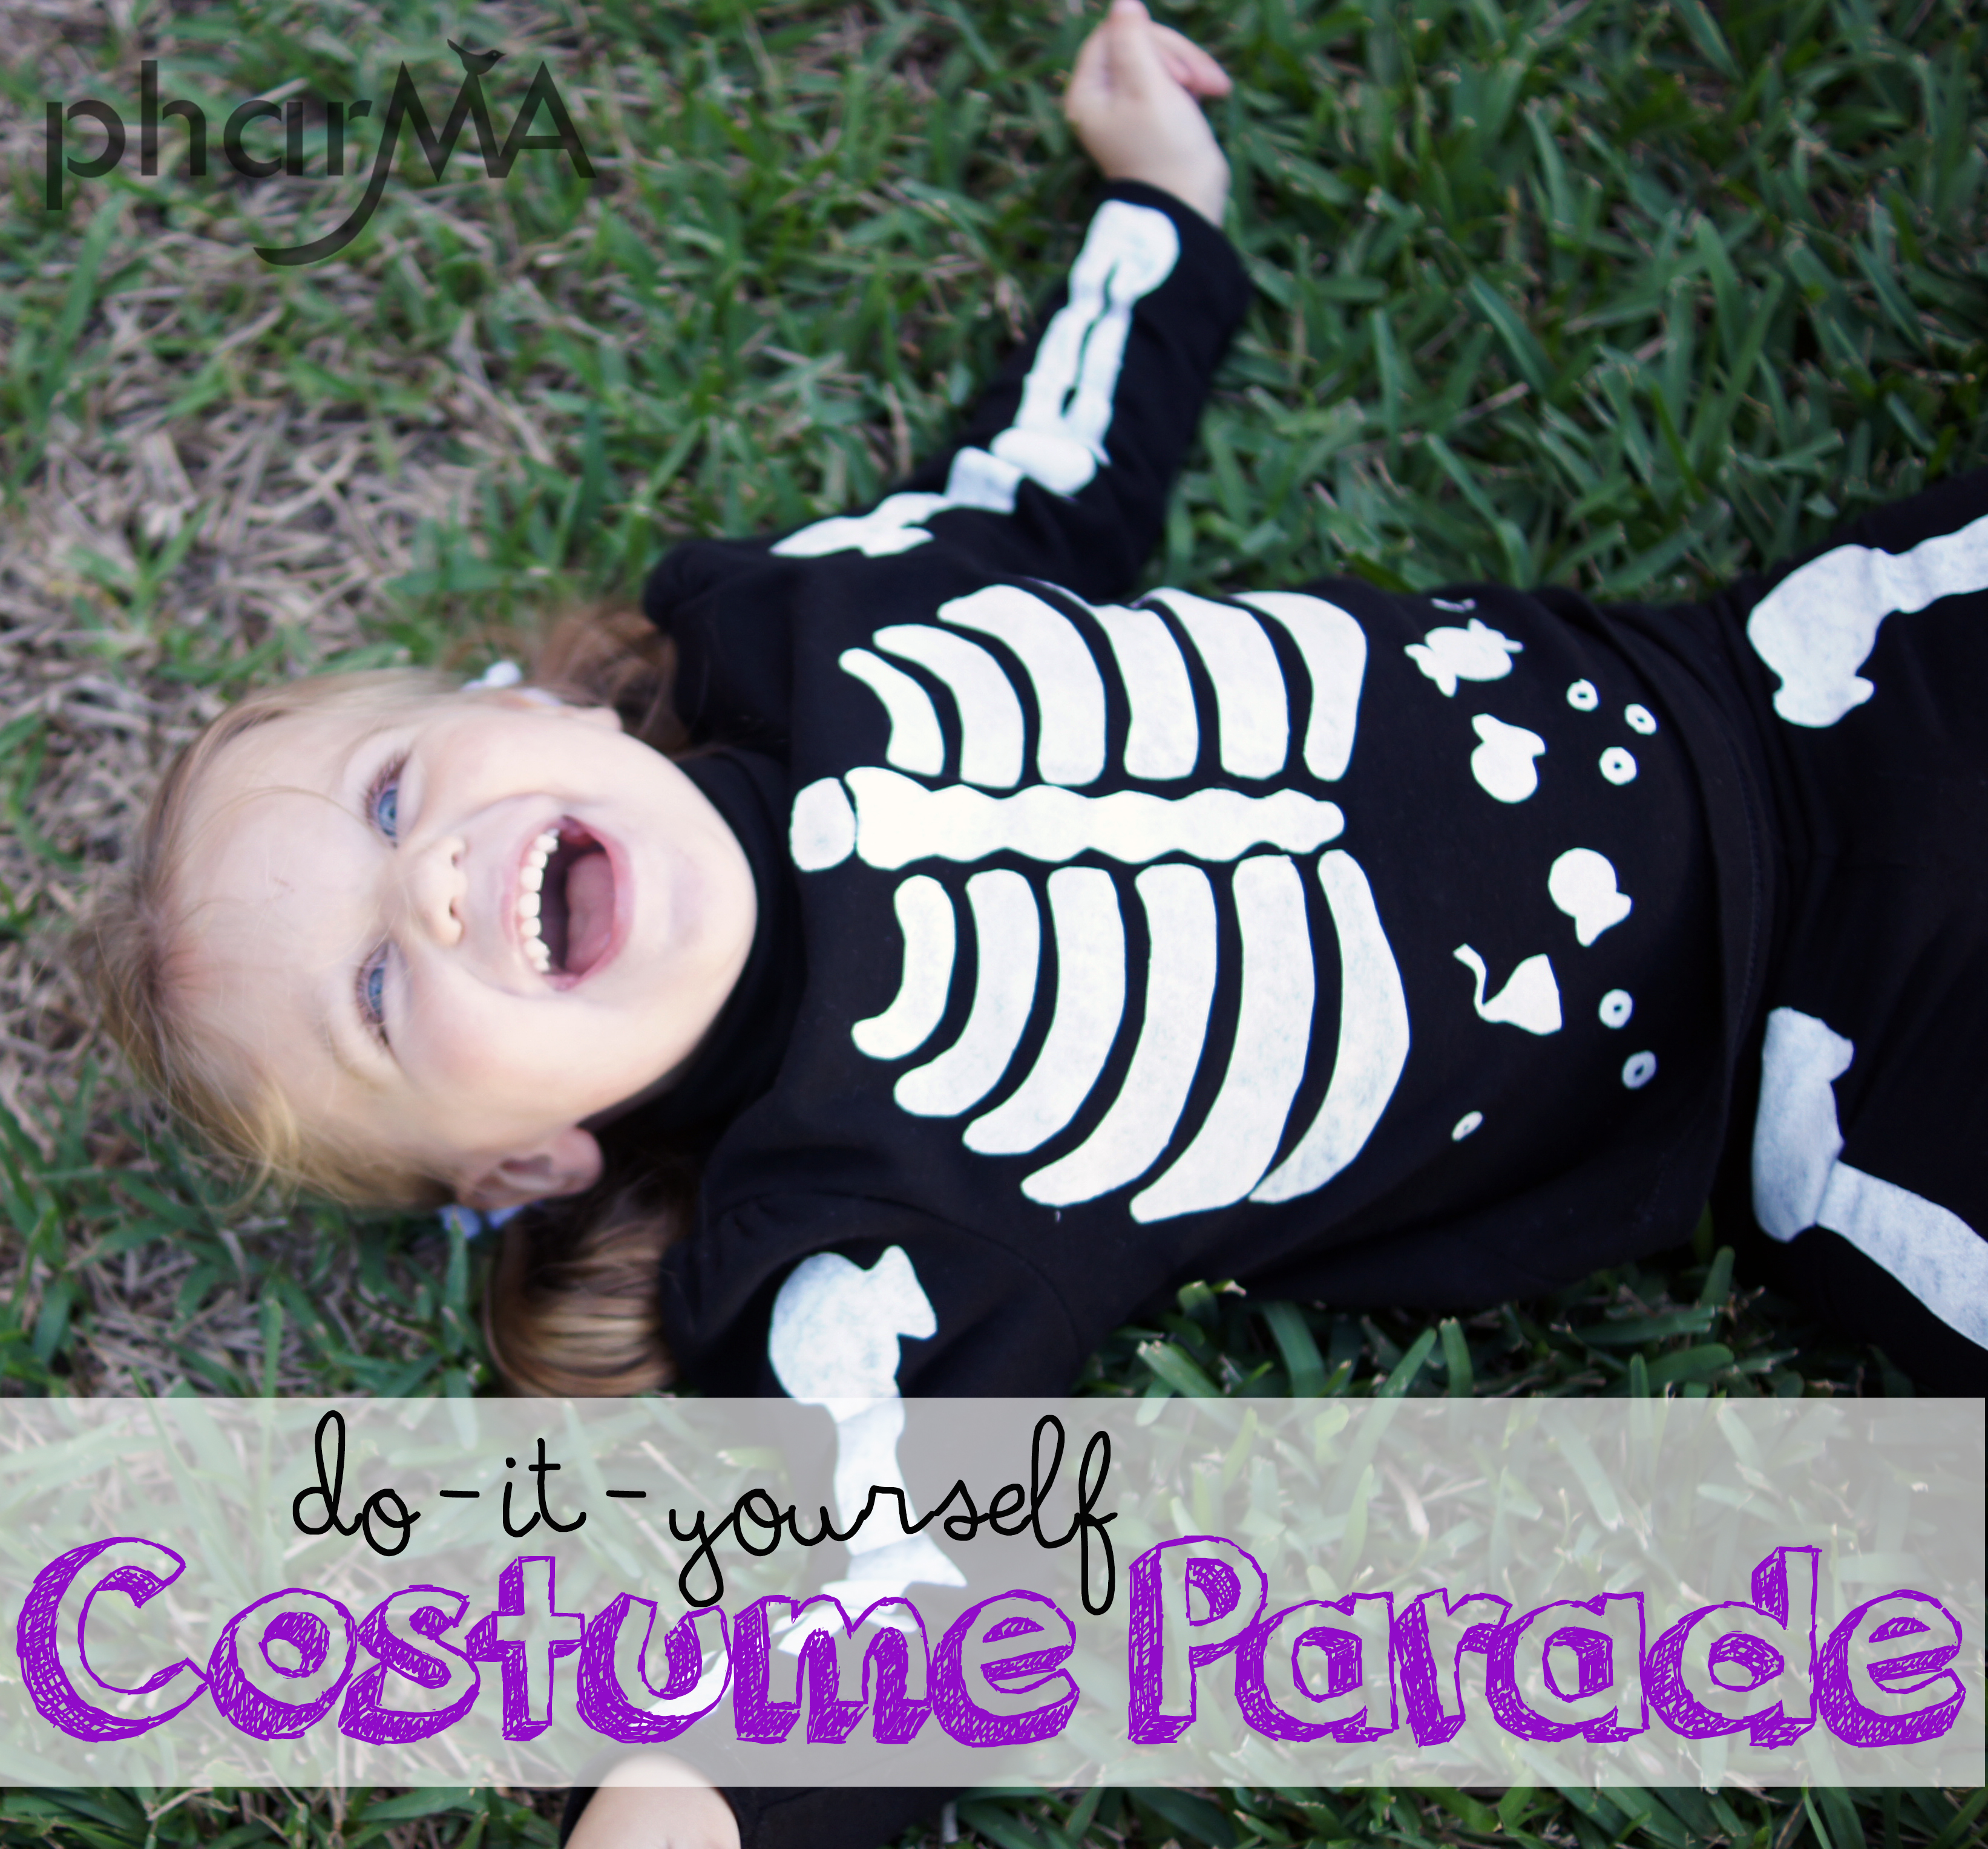 Halloween Costumes For Family Of 3 And Pregnant.Costume Parade The Pharma Blog